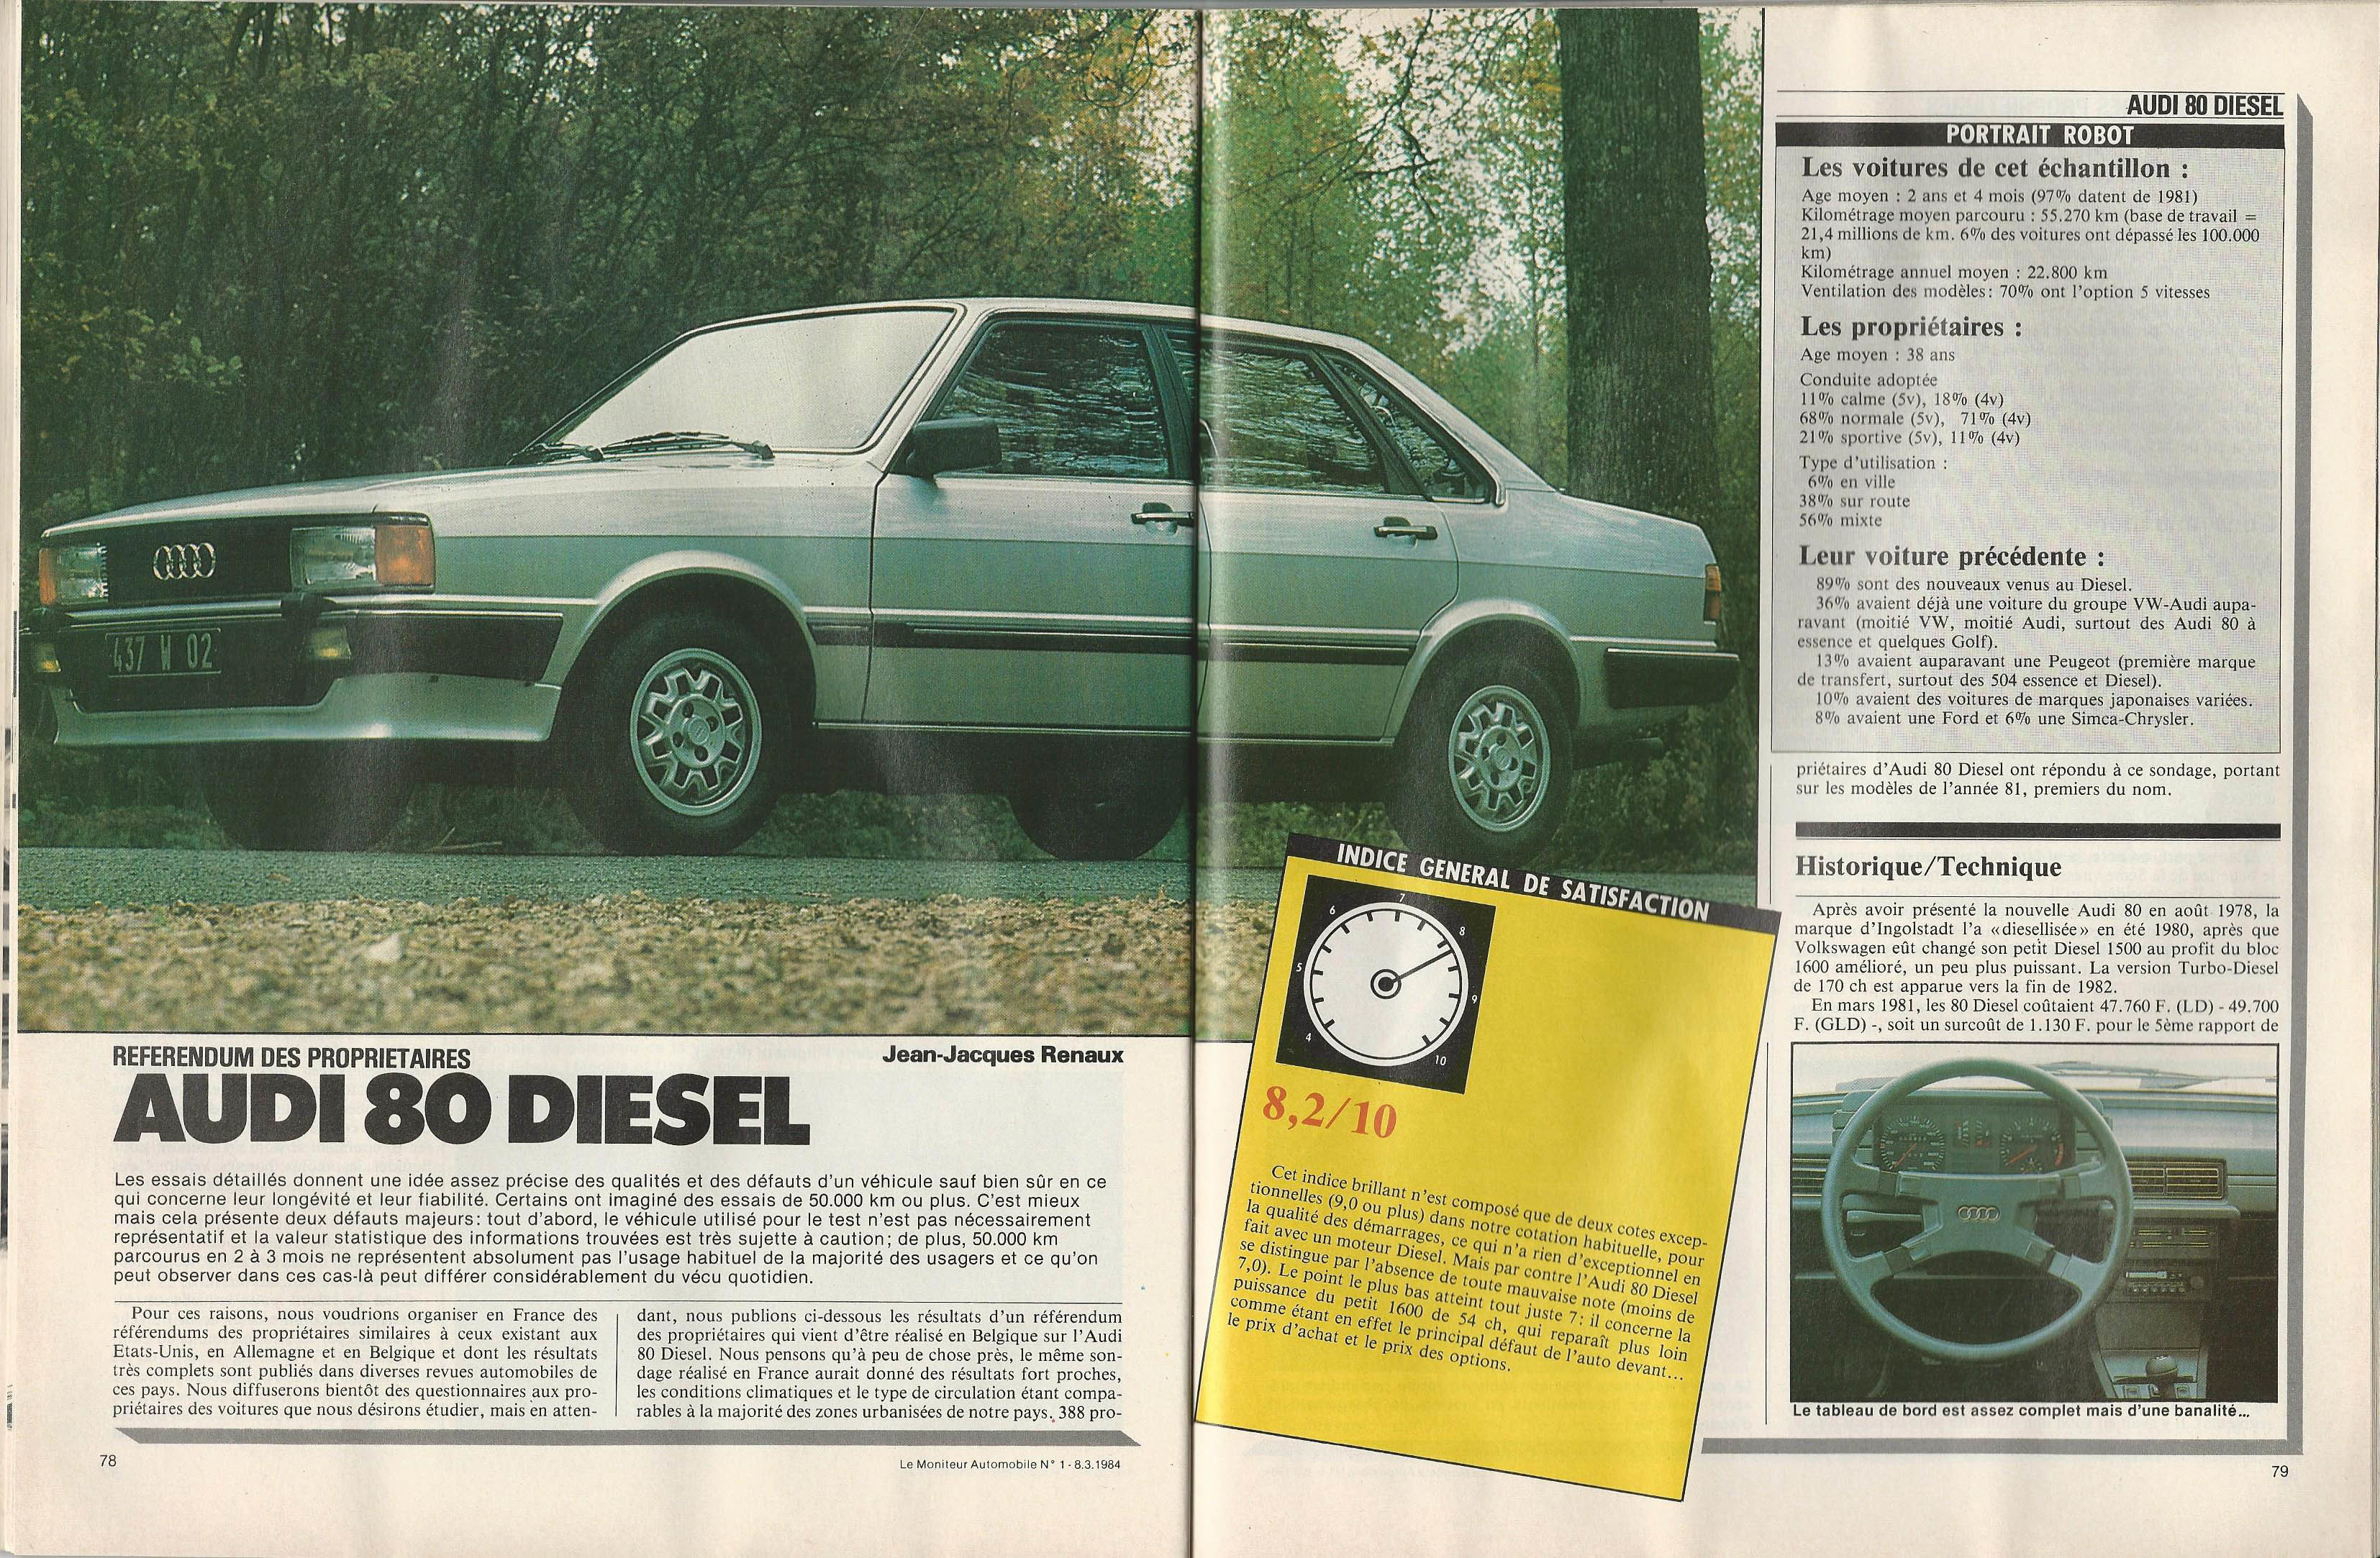 Moniteur Automobile 01 - 08 Mars 1984 (31)